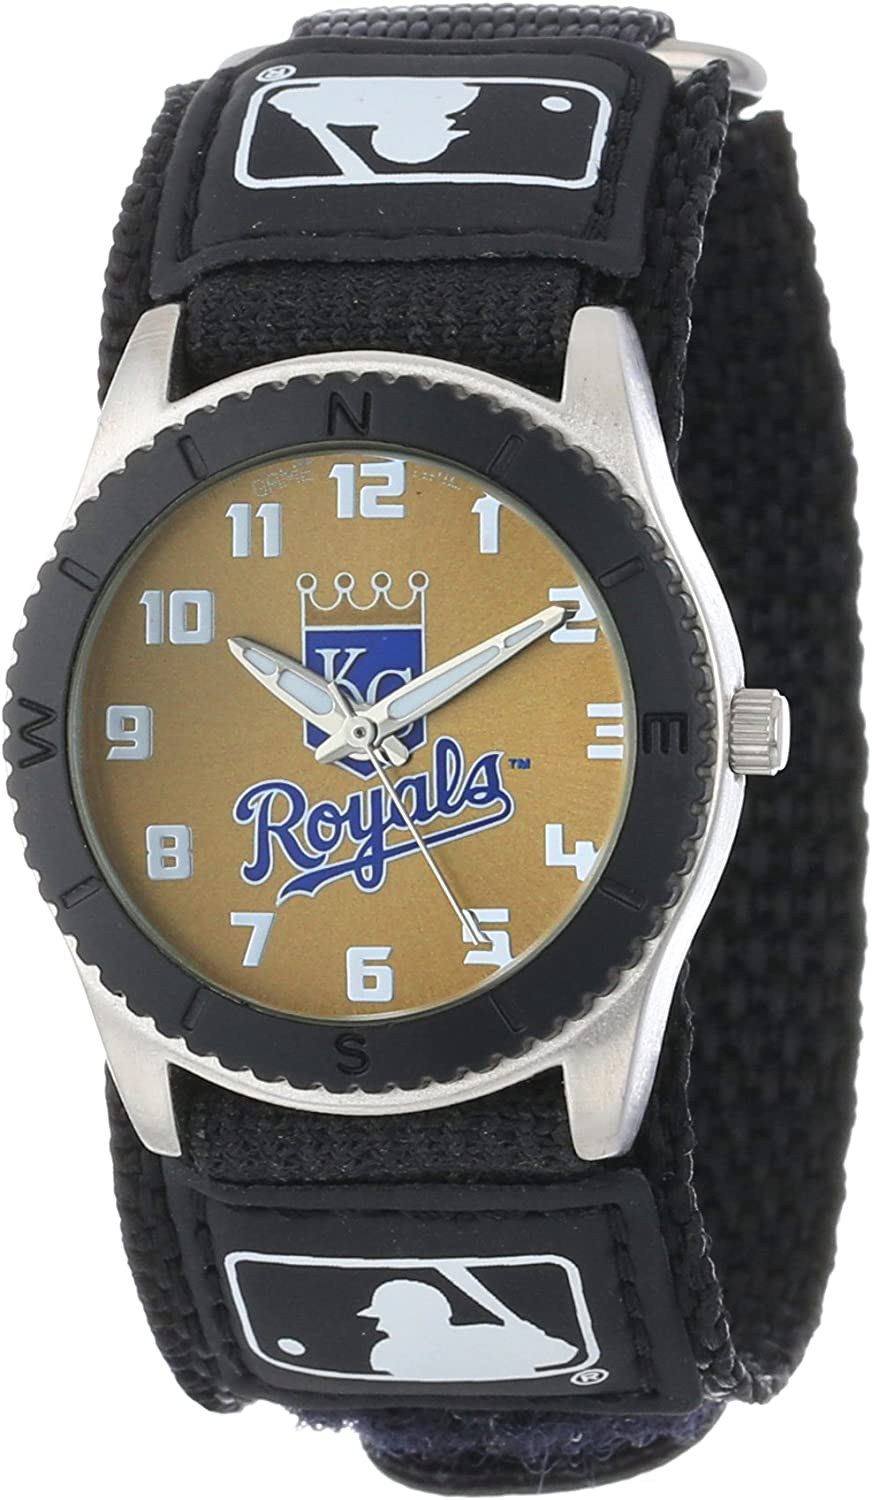 Game Time Youth MLB Rookie Black Watch - Kansas City Royals